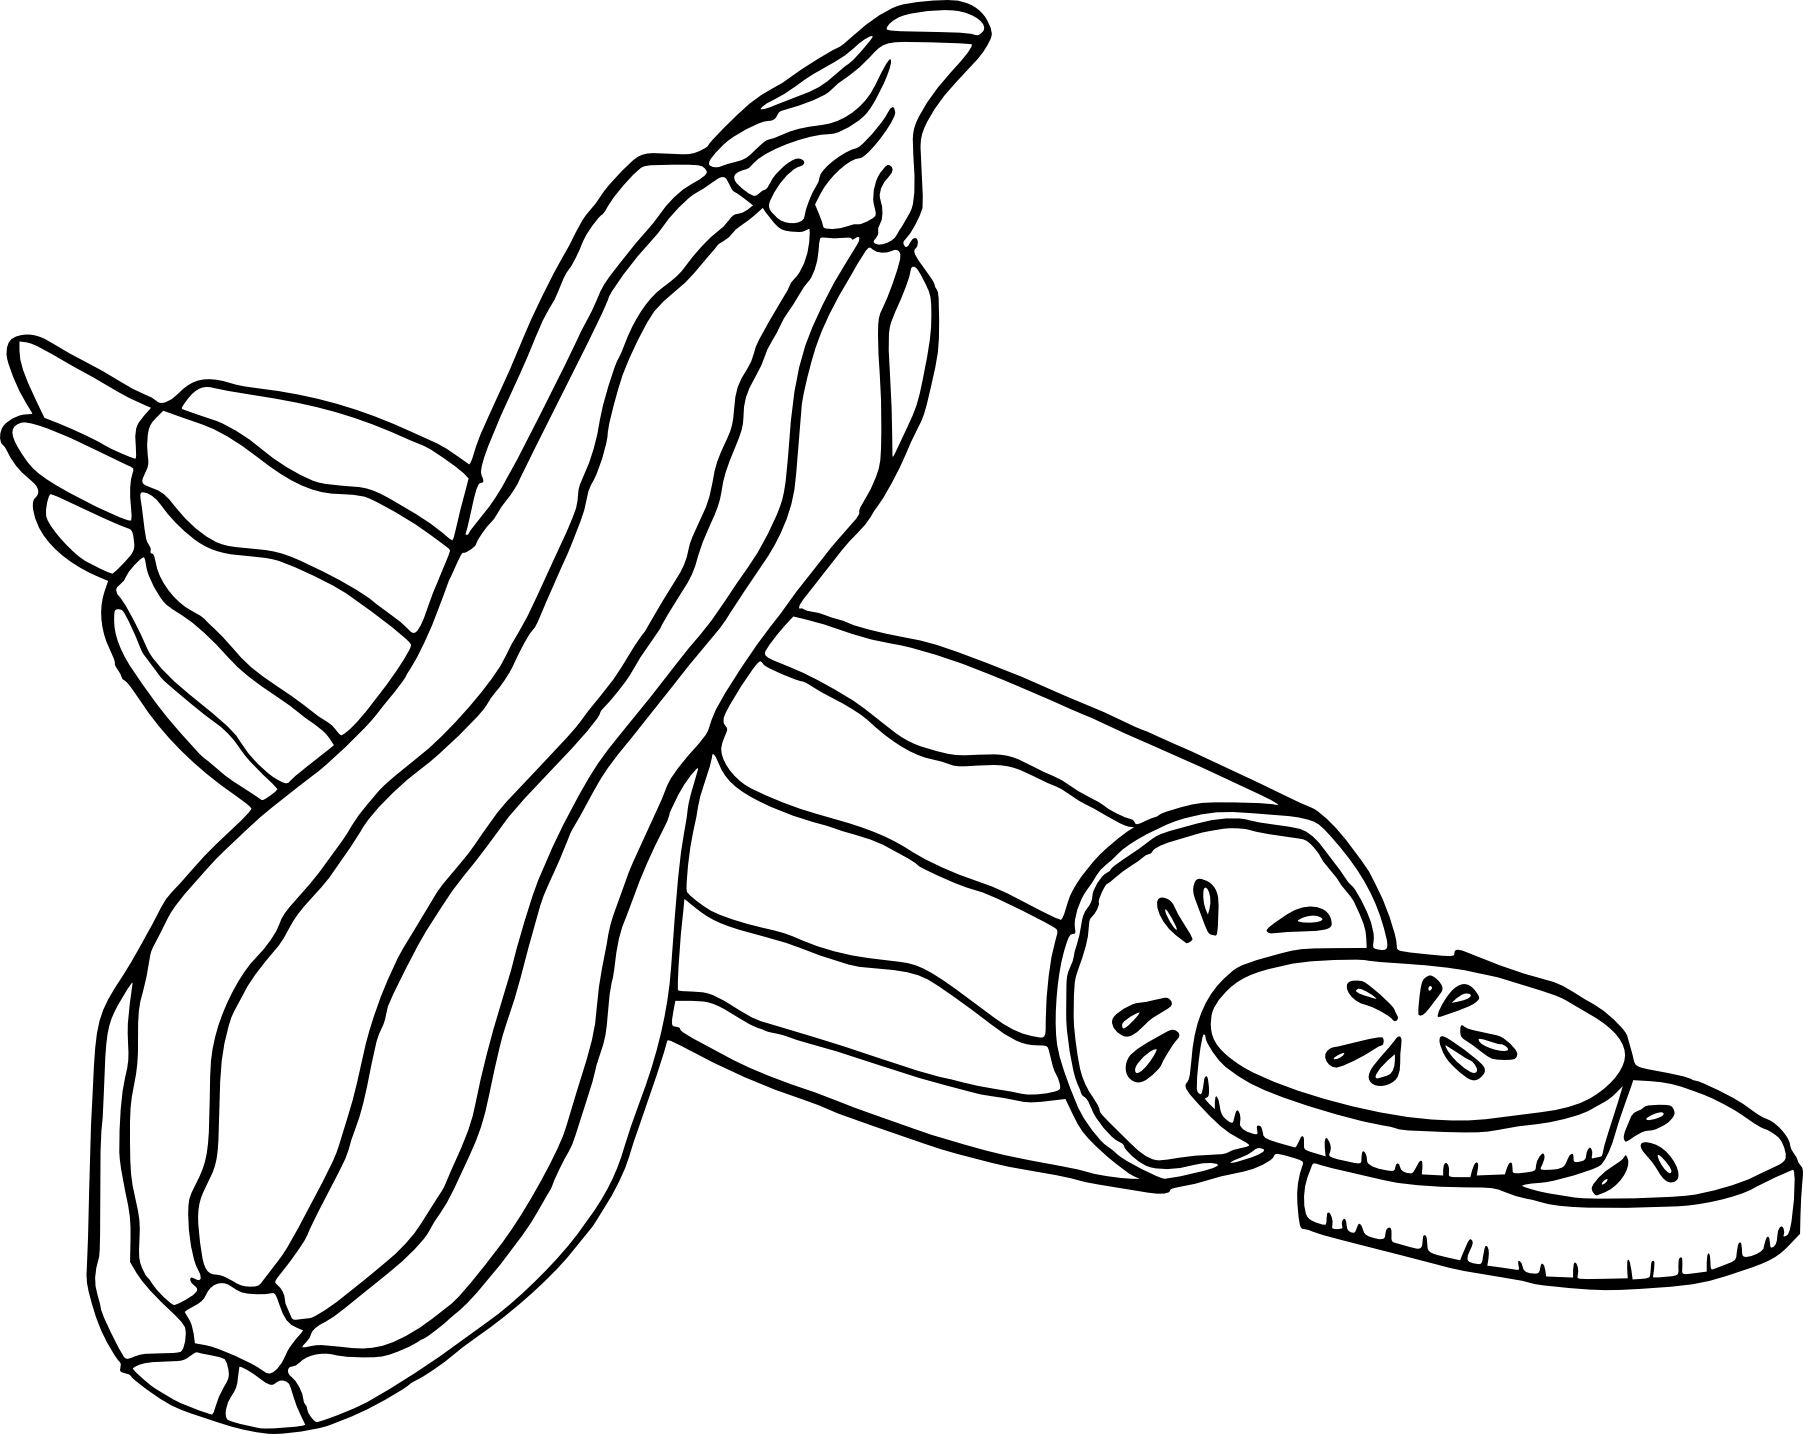 Coloriage courgette